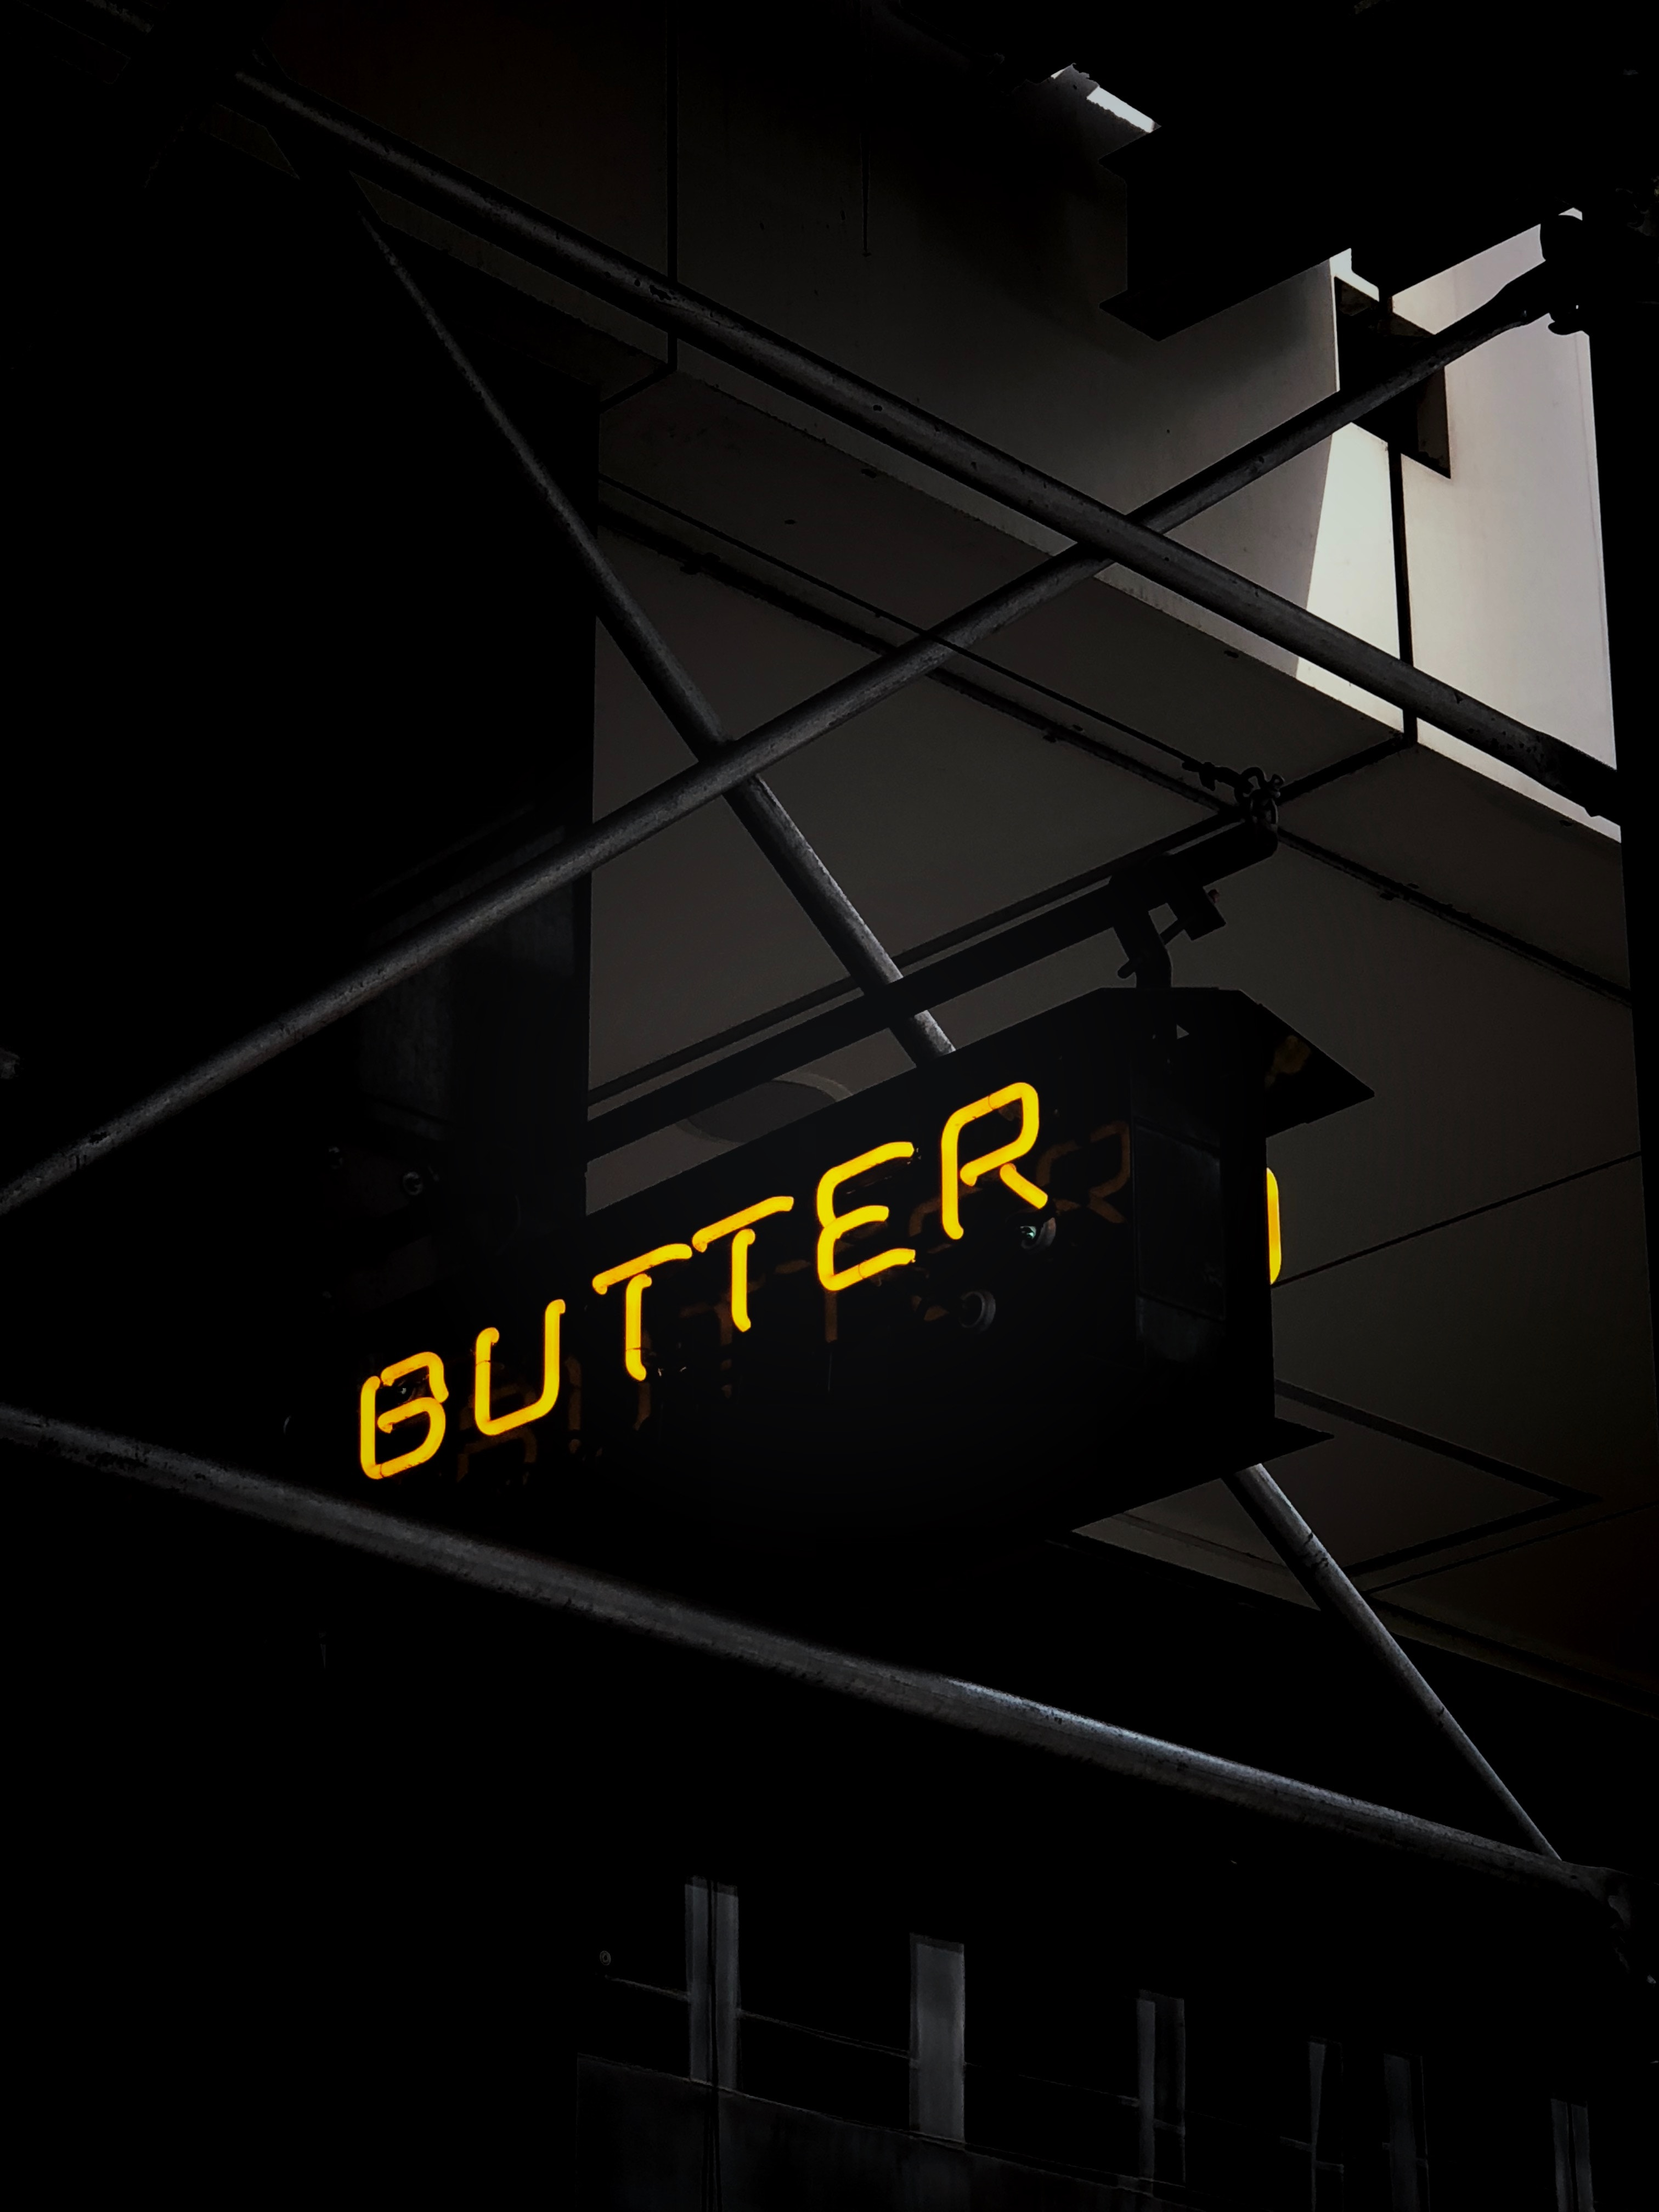 butter is not bad